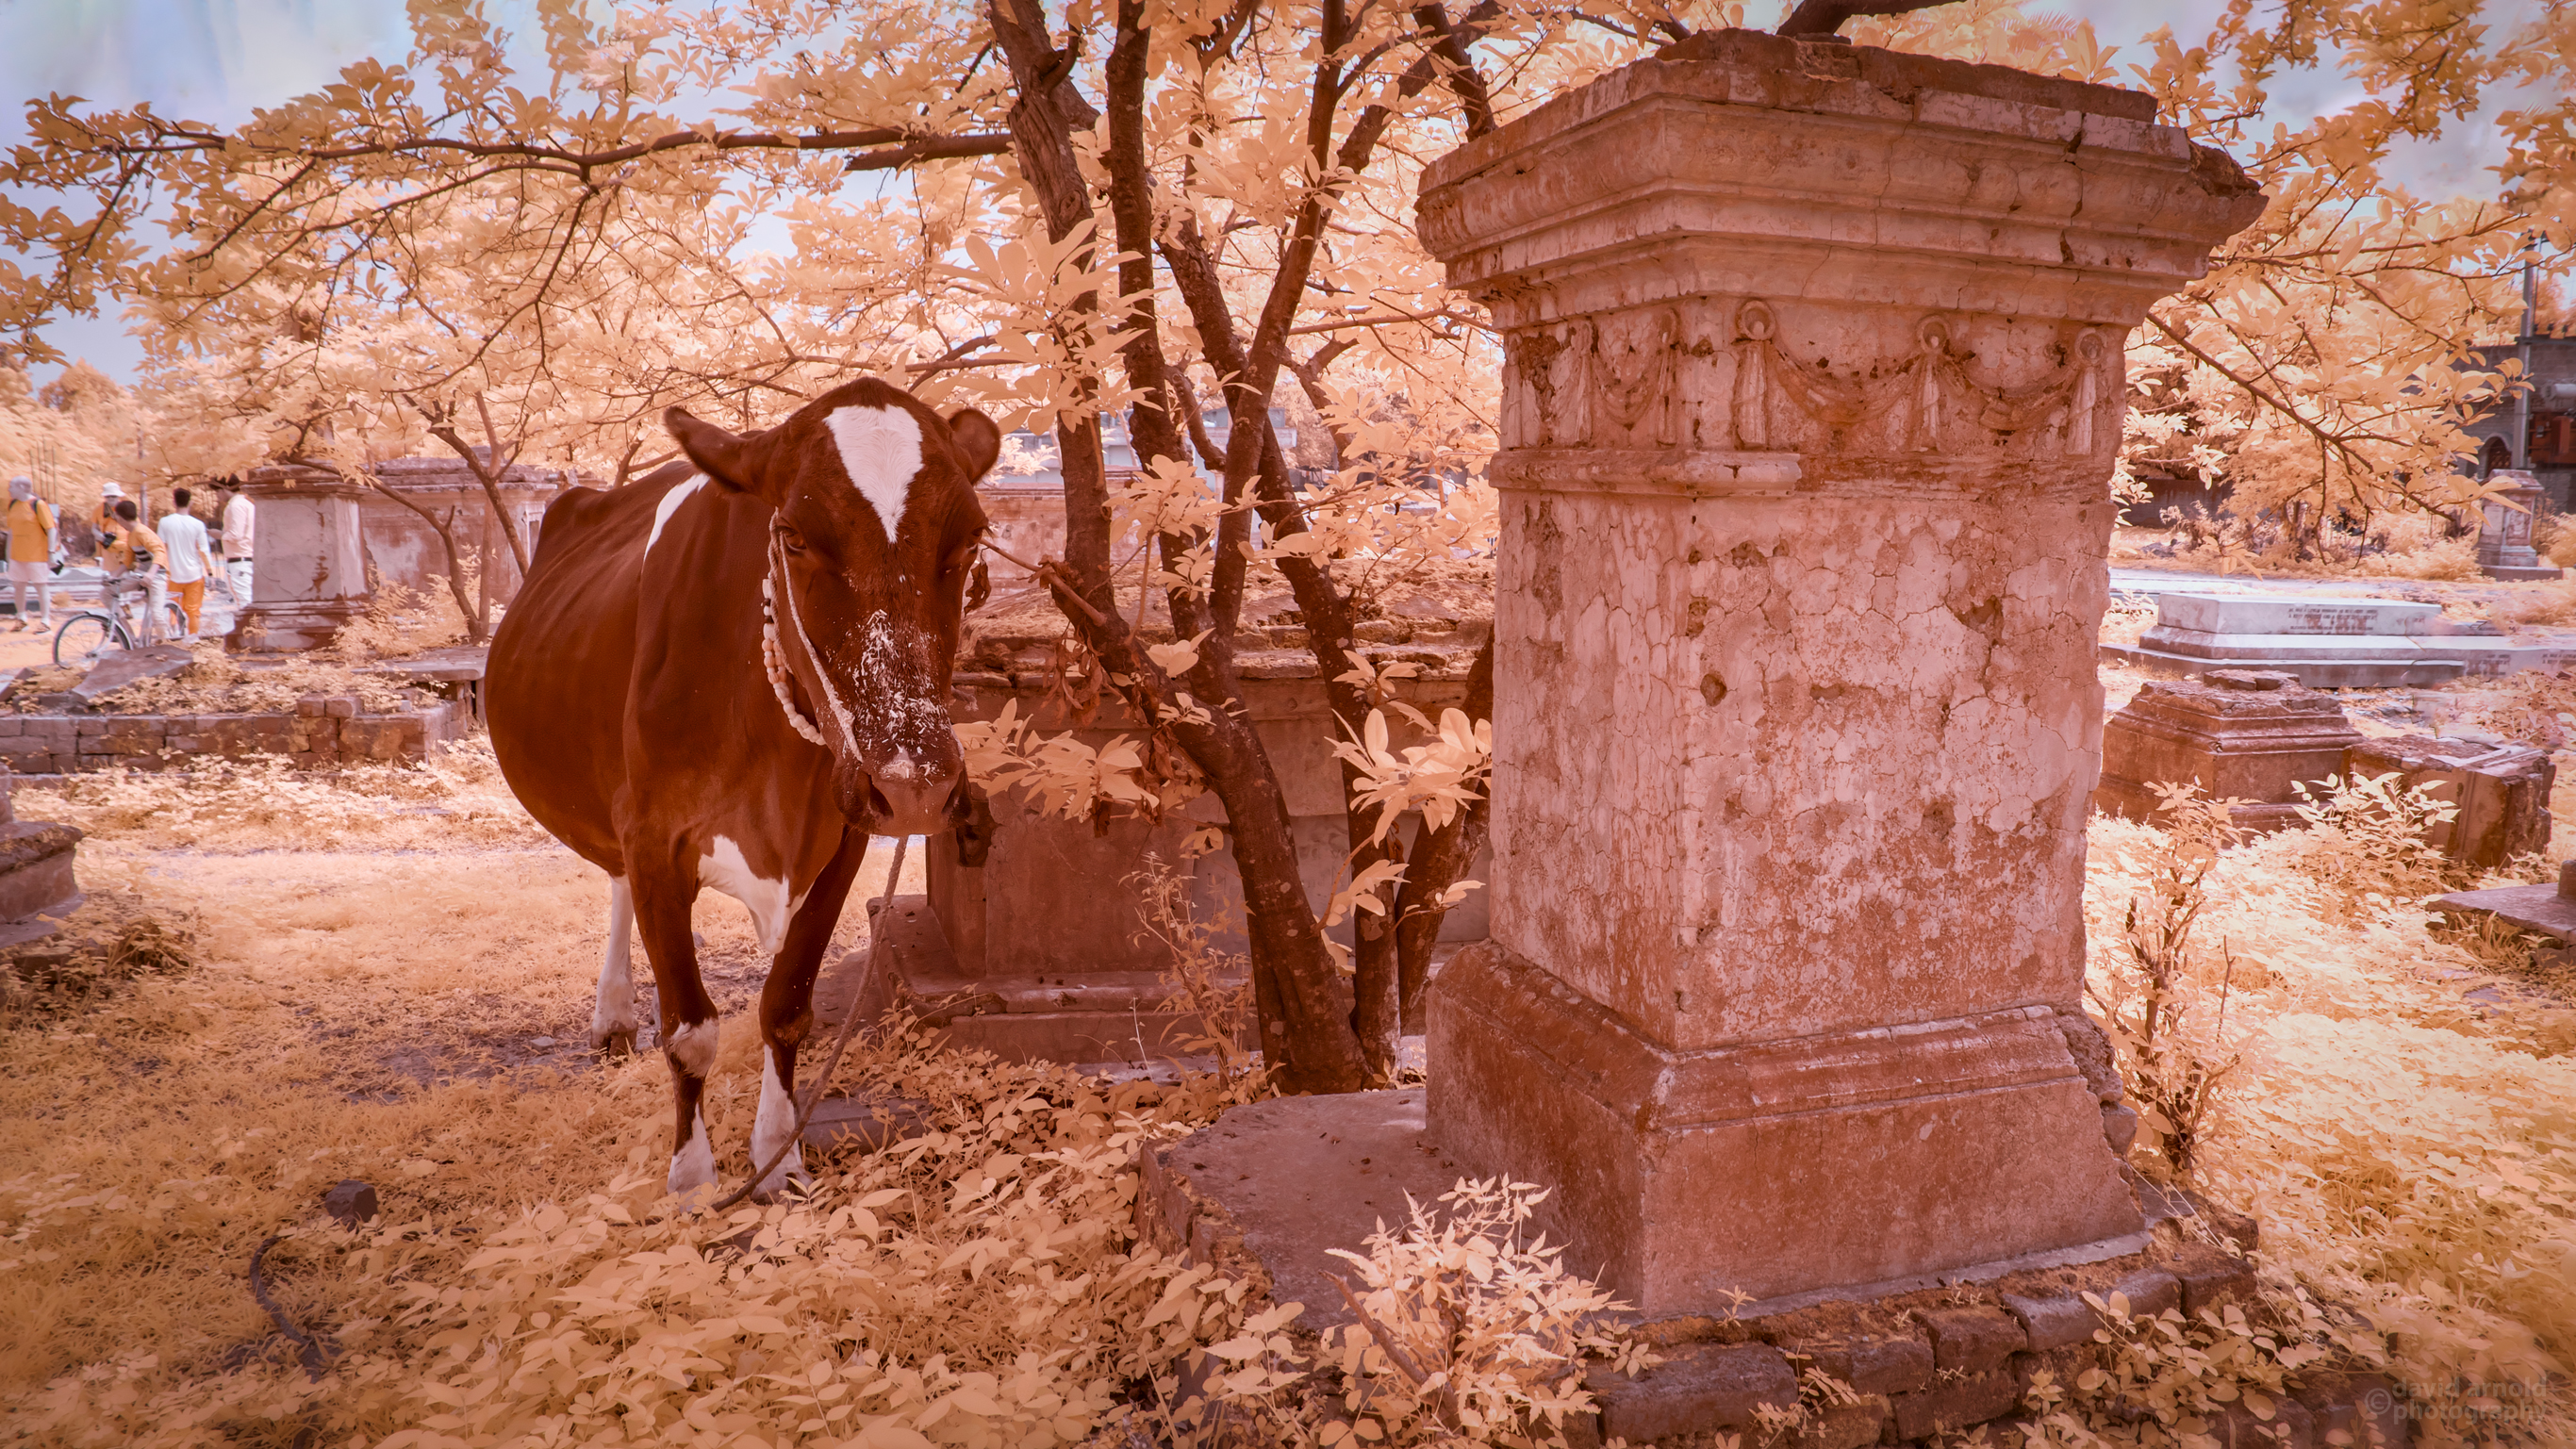 Cow beside a cemetery tomb.